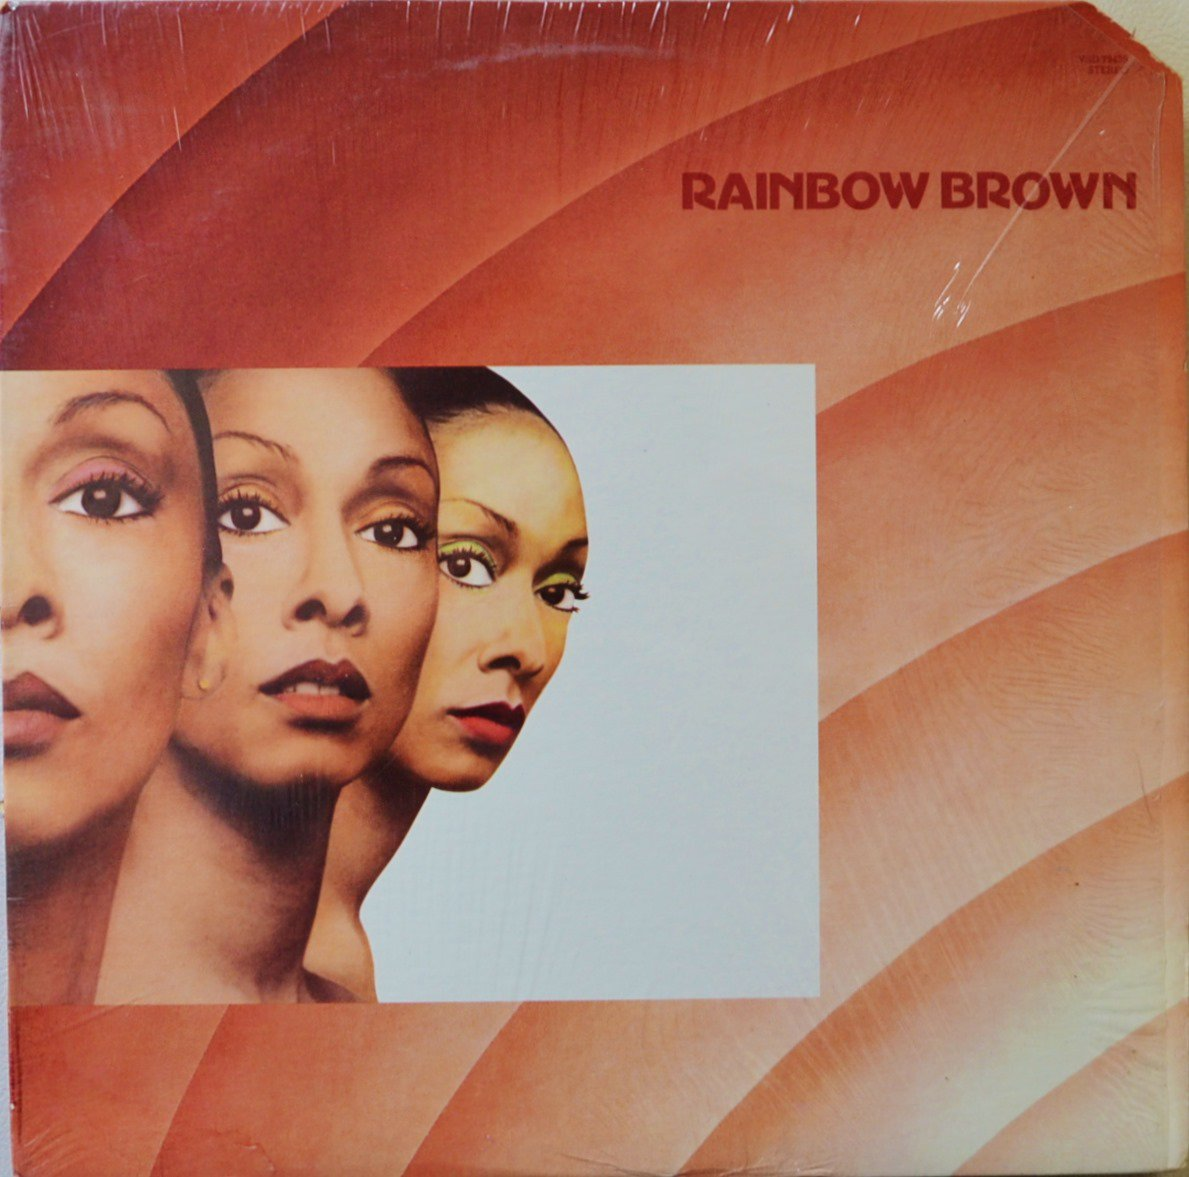 RAINBOW BROWN / RAINBOW BROWN (LP)